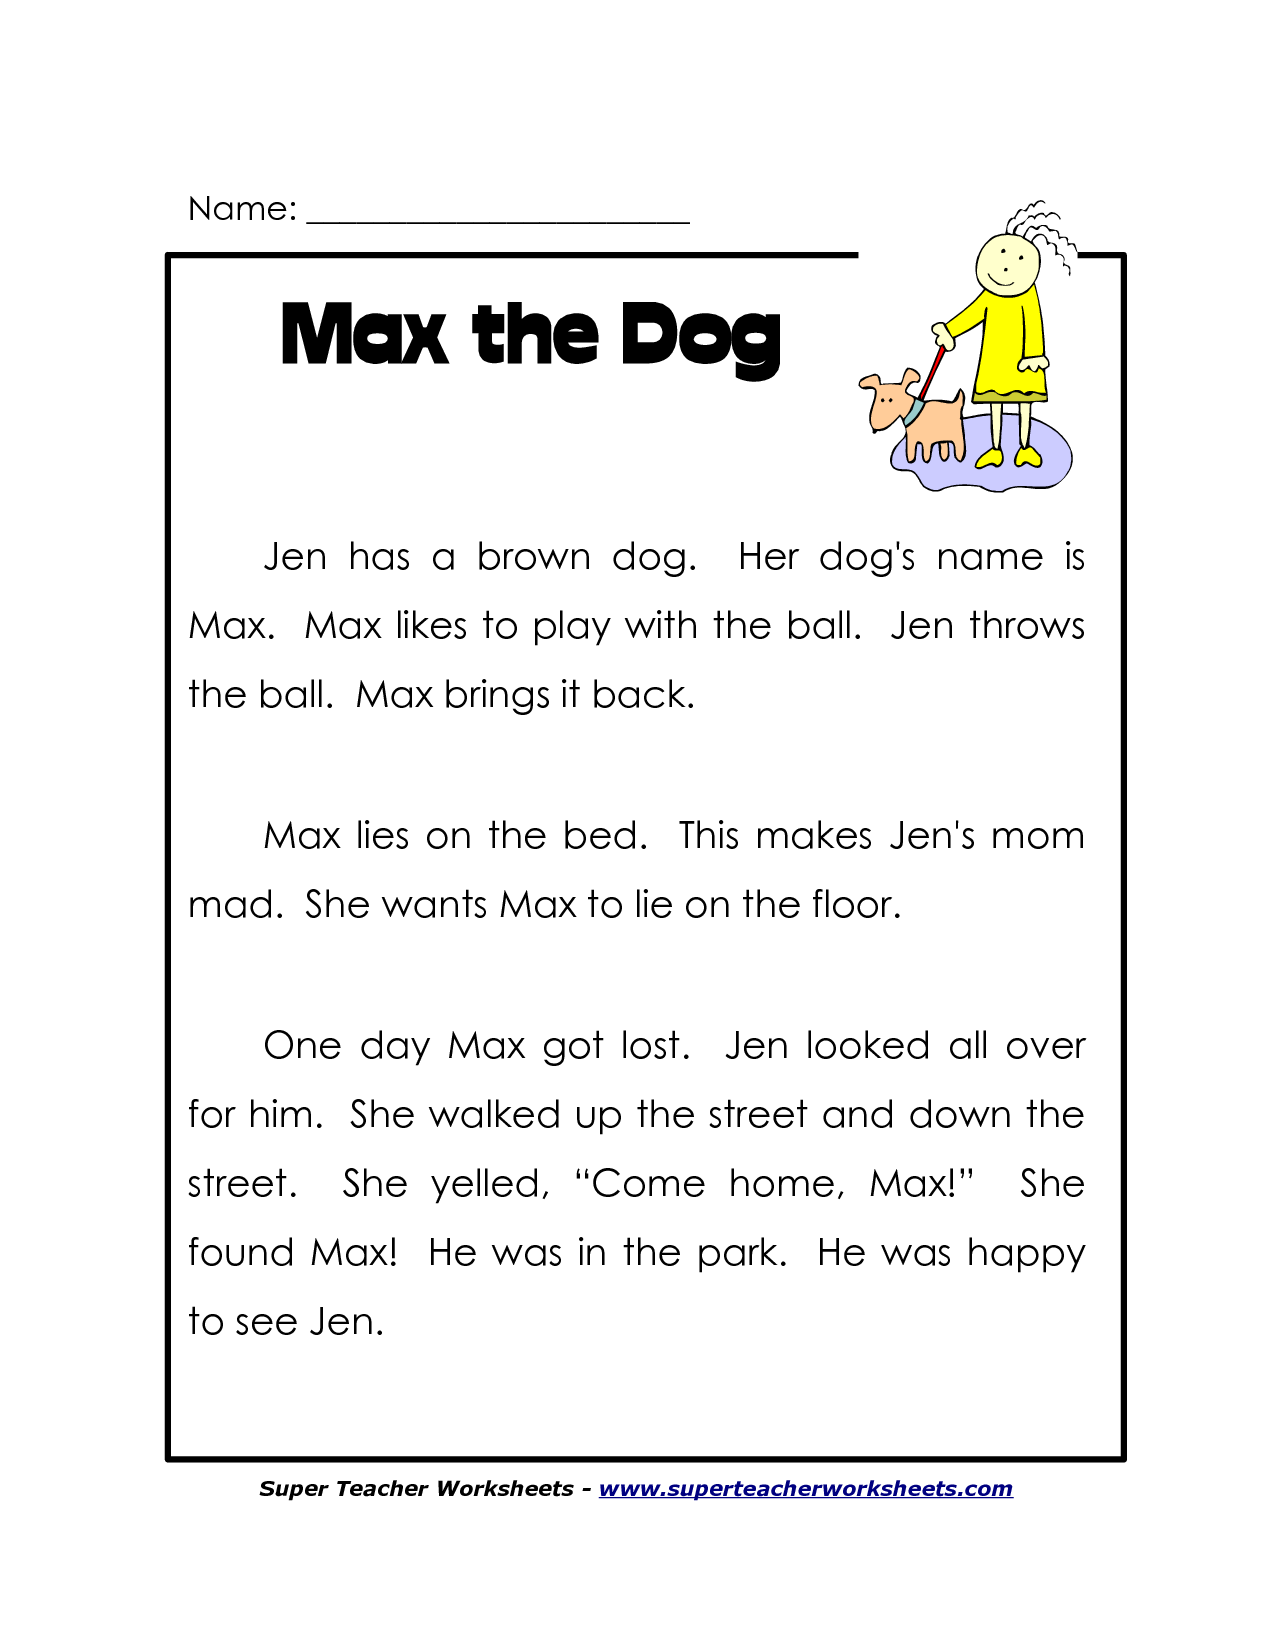 Reading Worksheets Printable Precommunity Printables Worksheets – Kindergarten Reading Printable Worksheets